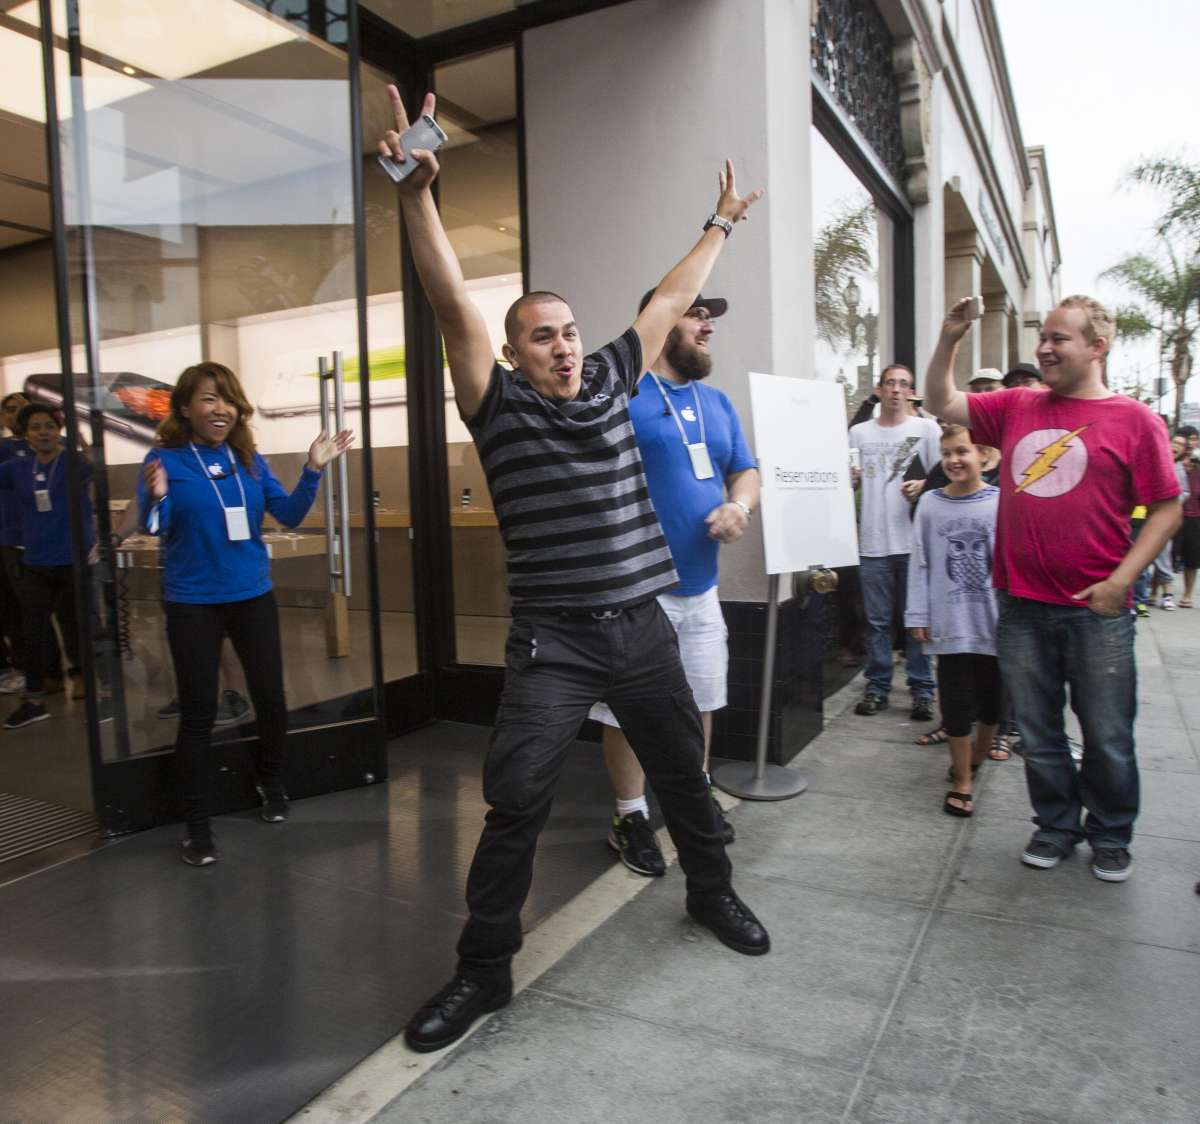 An Apple fan celebrates for being the first person purchasing an iphone 6 smartphone at an Apple store in Los Angeles, California